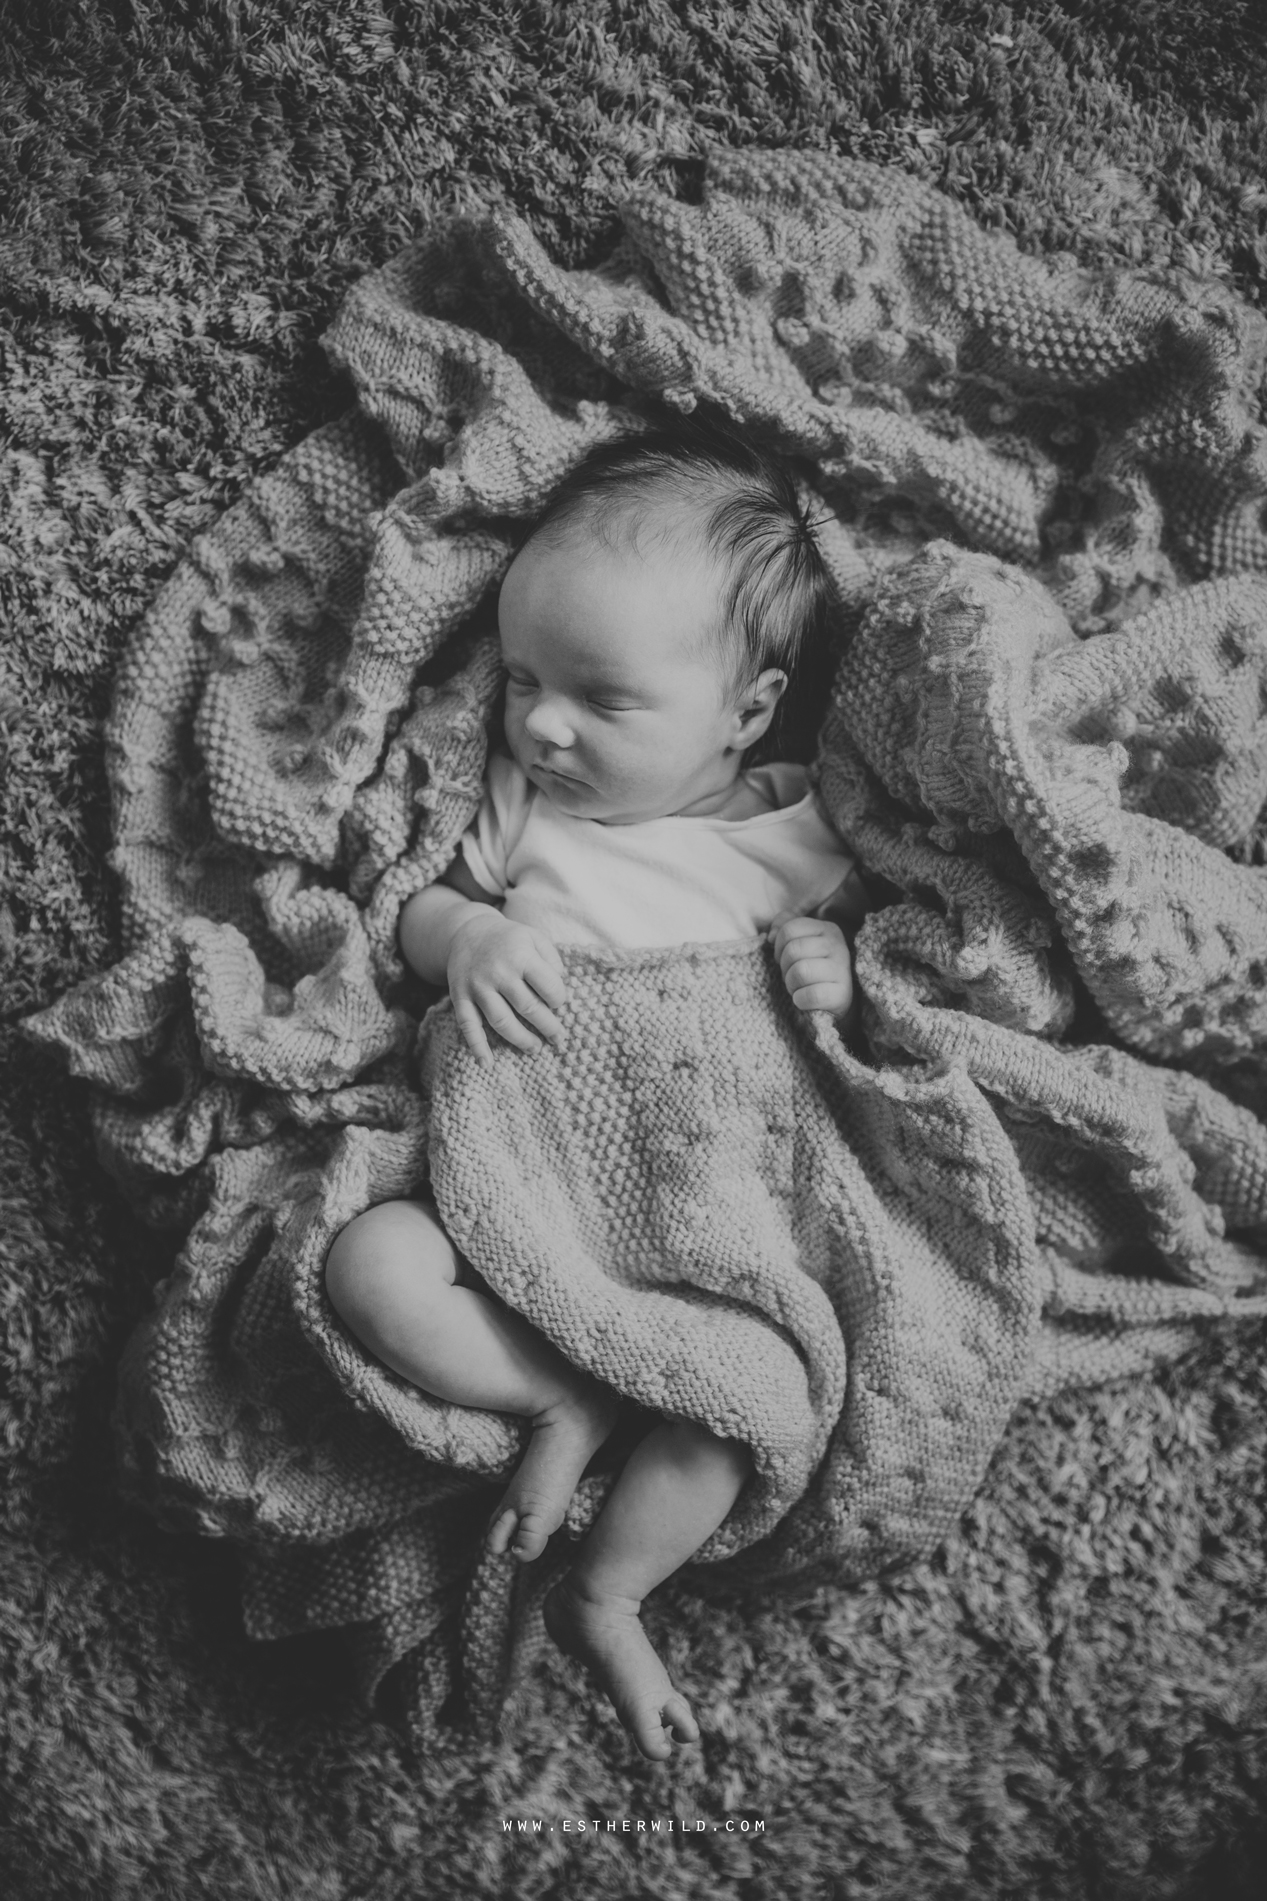 Newborn_Family_Photographer_London_Home_Lifestyle_Norfolk_3R8A4111-2.jpg